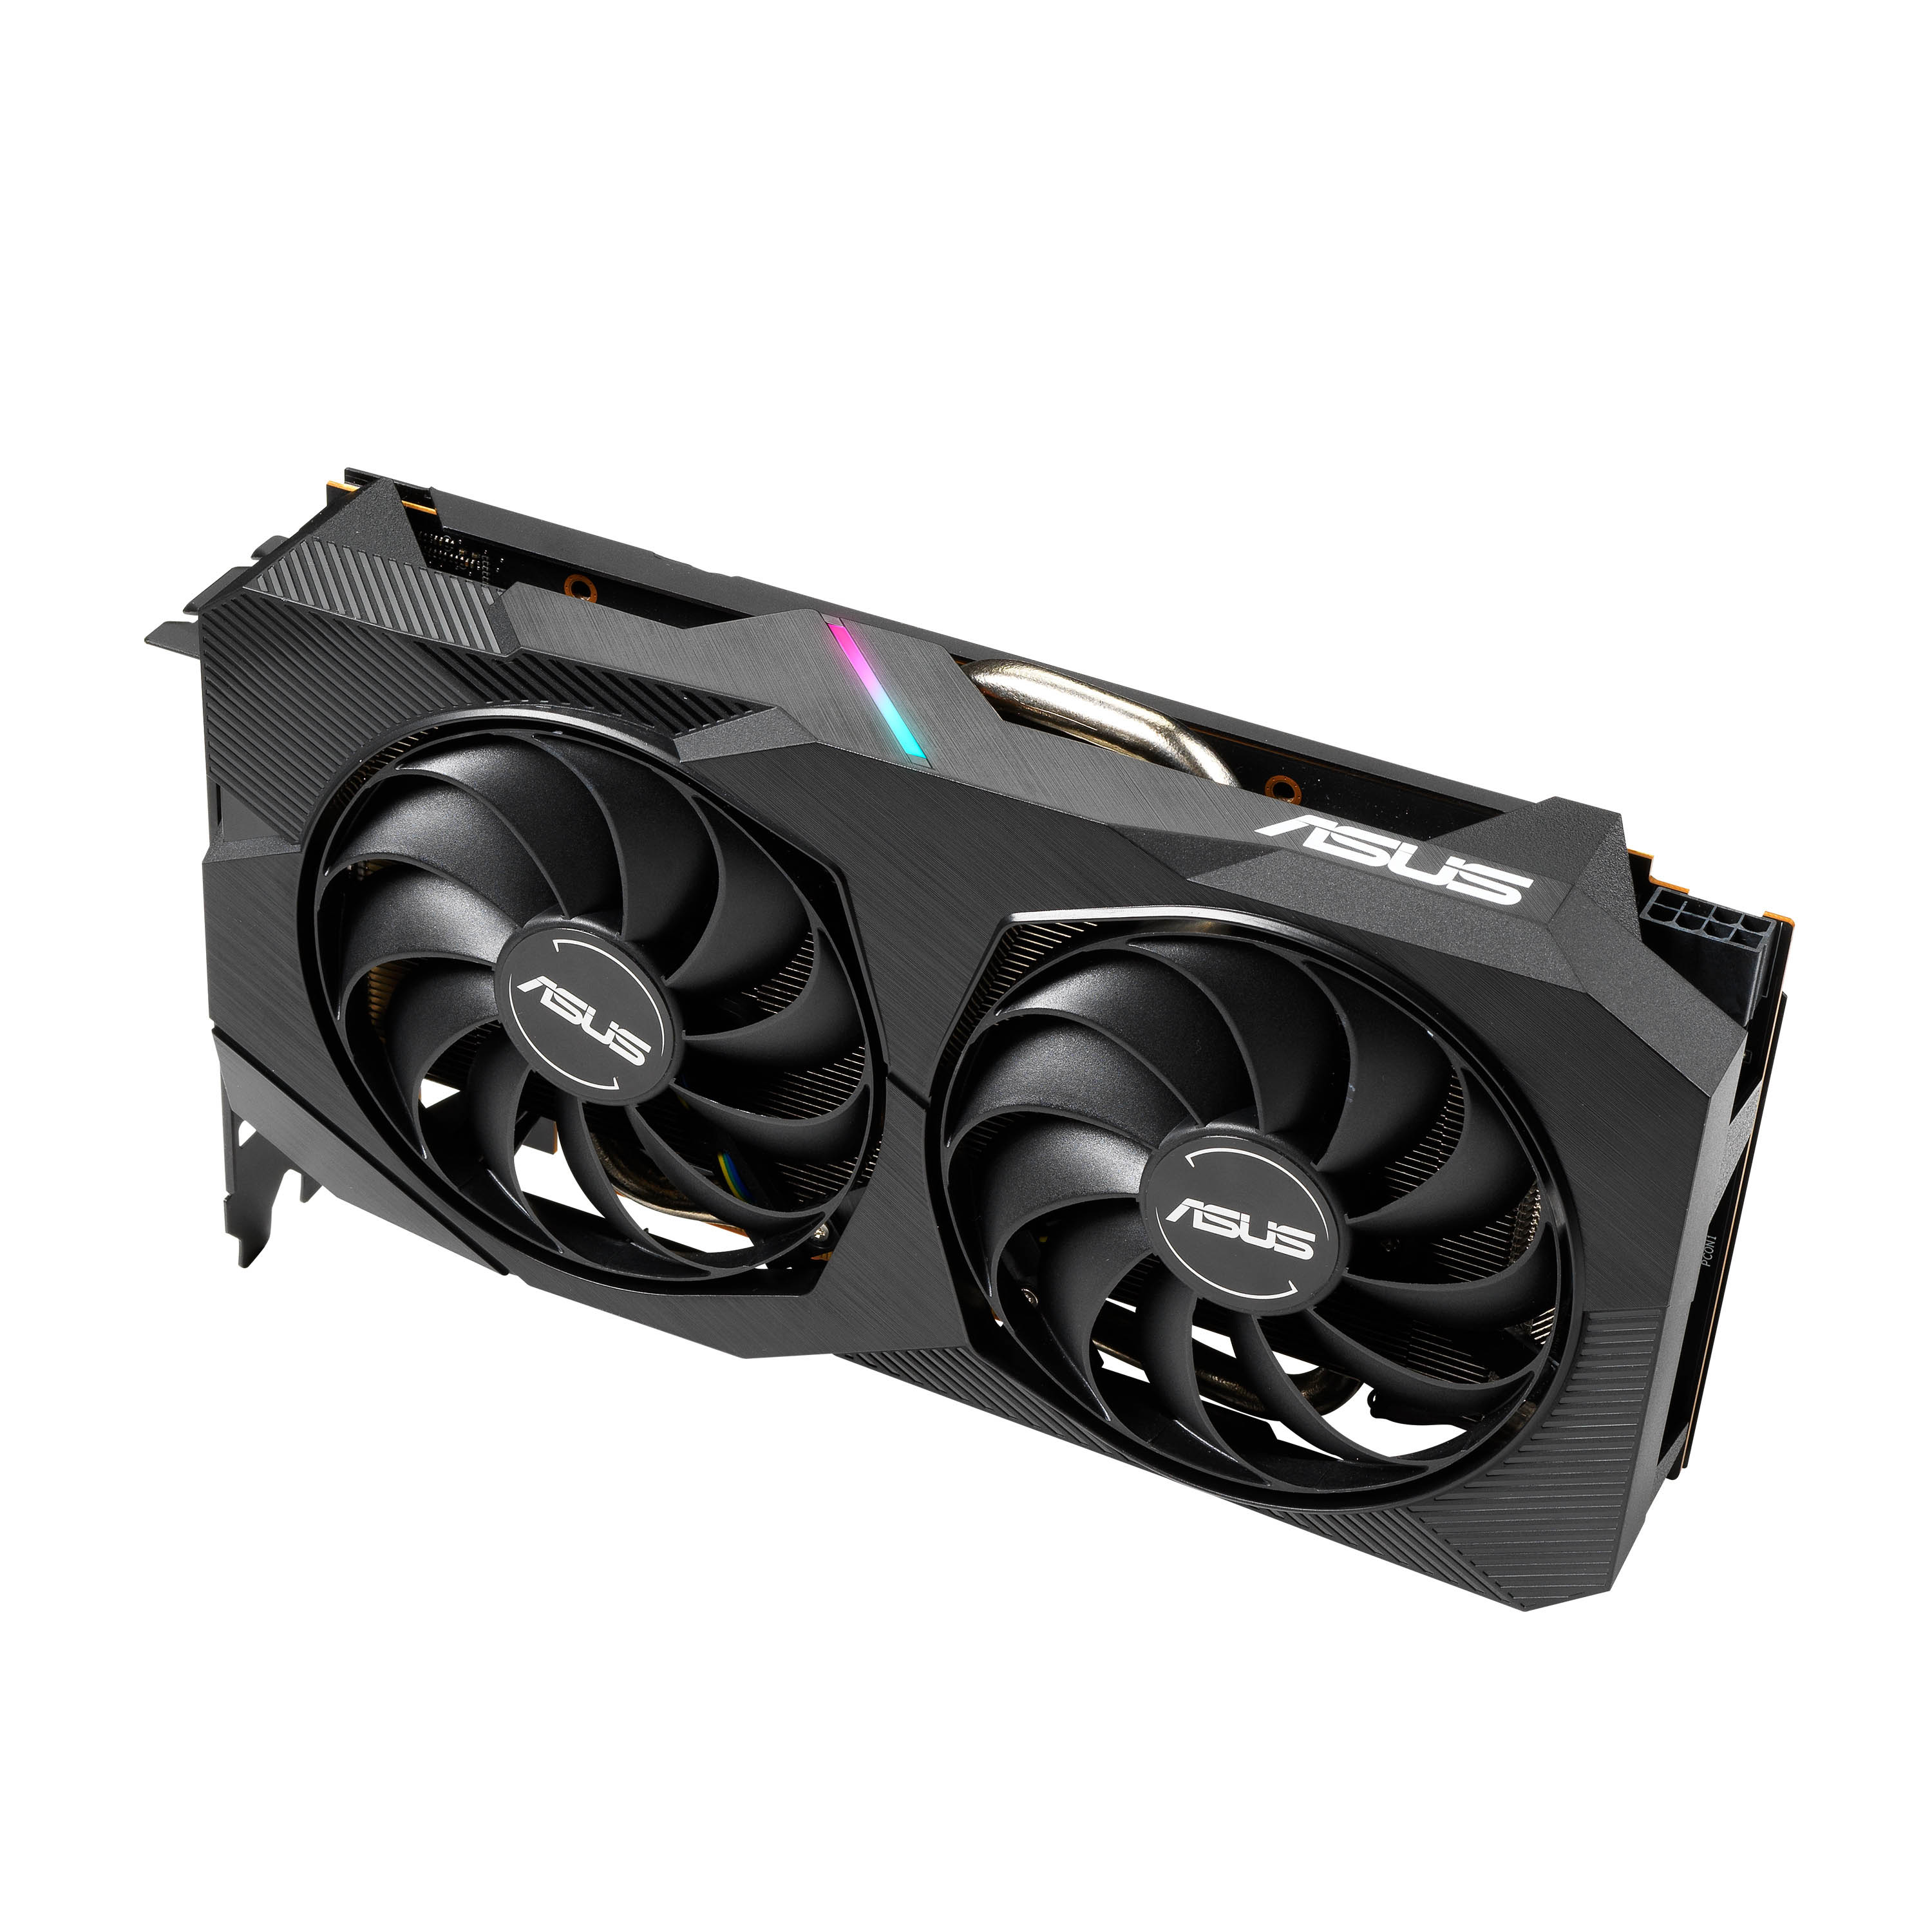 ASUS annuncia le schede video ROG Strix e Dual Radeon RX 5500 XT 6